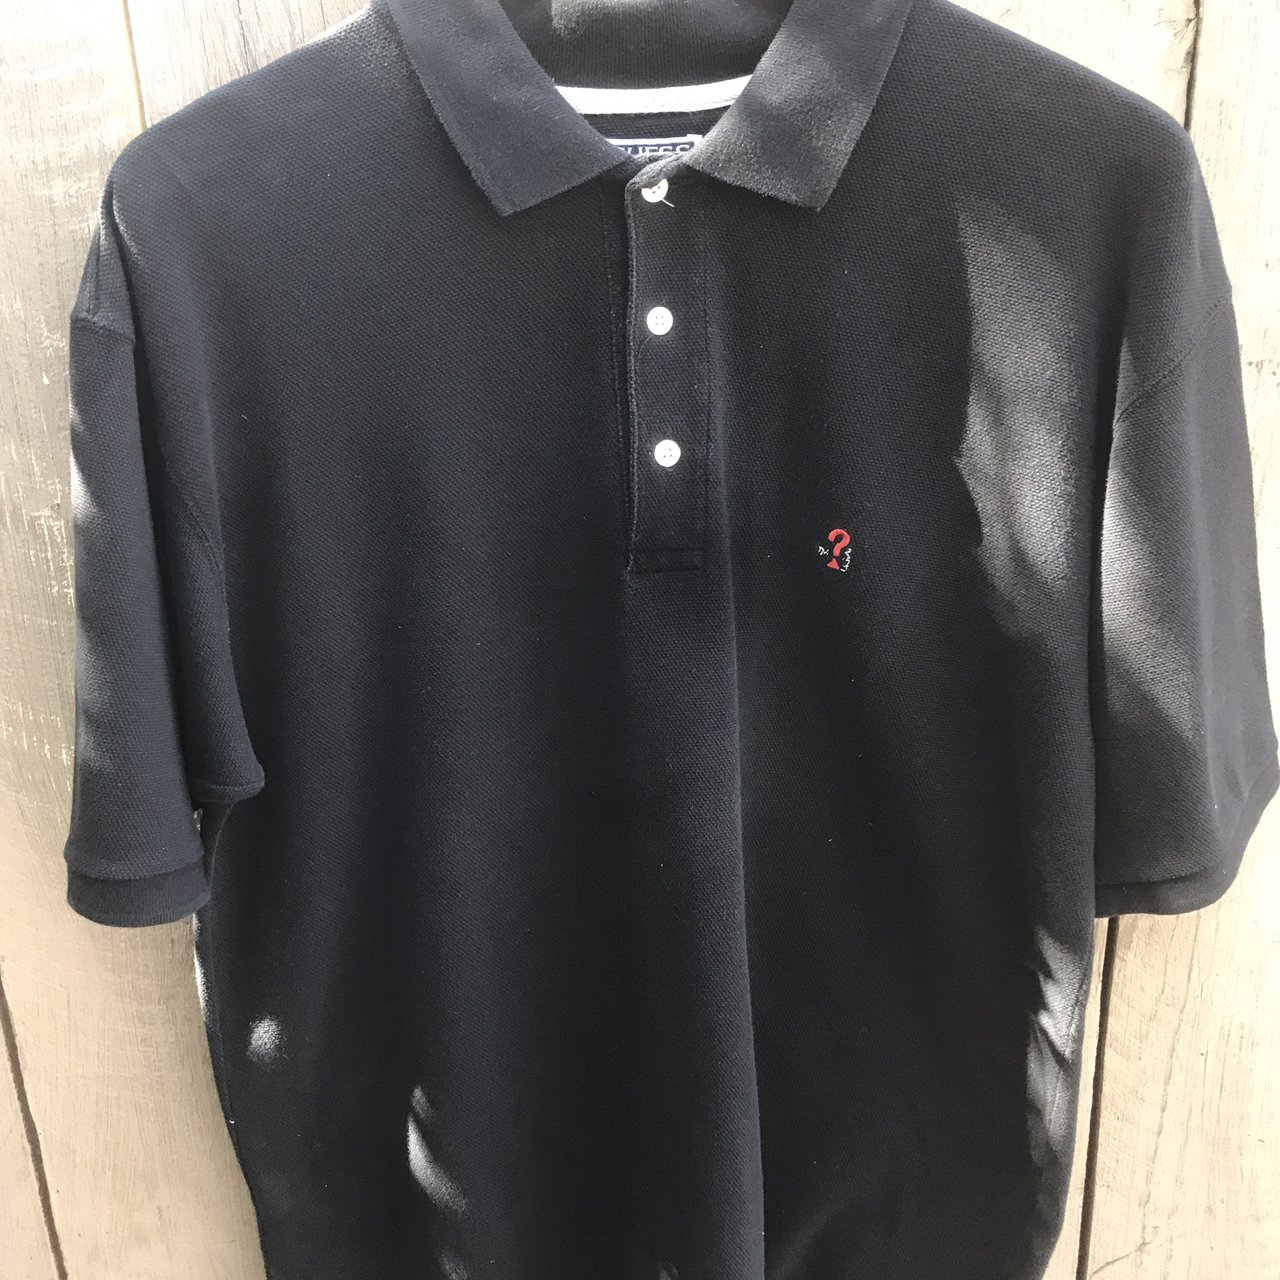 bece68891 @michaelsss. 10 months ago. Burbank, United States. Vintage 90s Guess  Question Mark Polo T Shirt